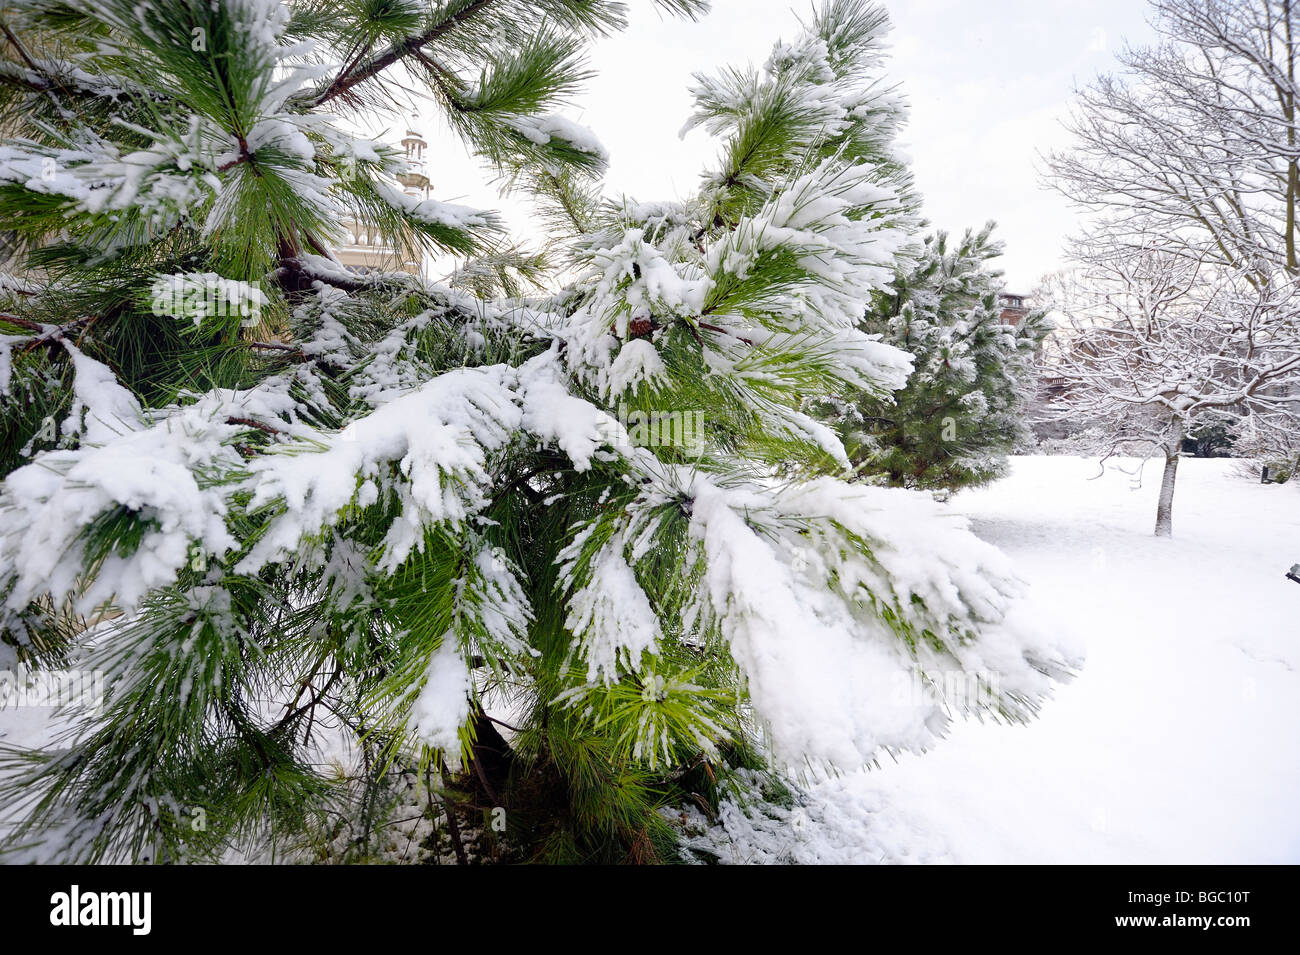 A fir tree covered in snow - Stock Image